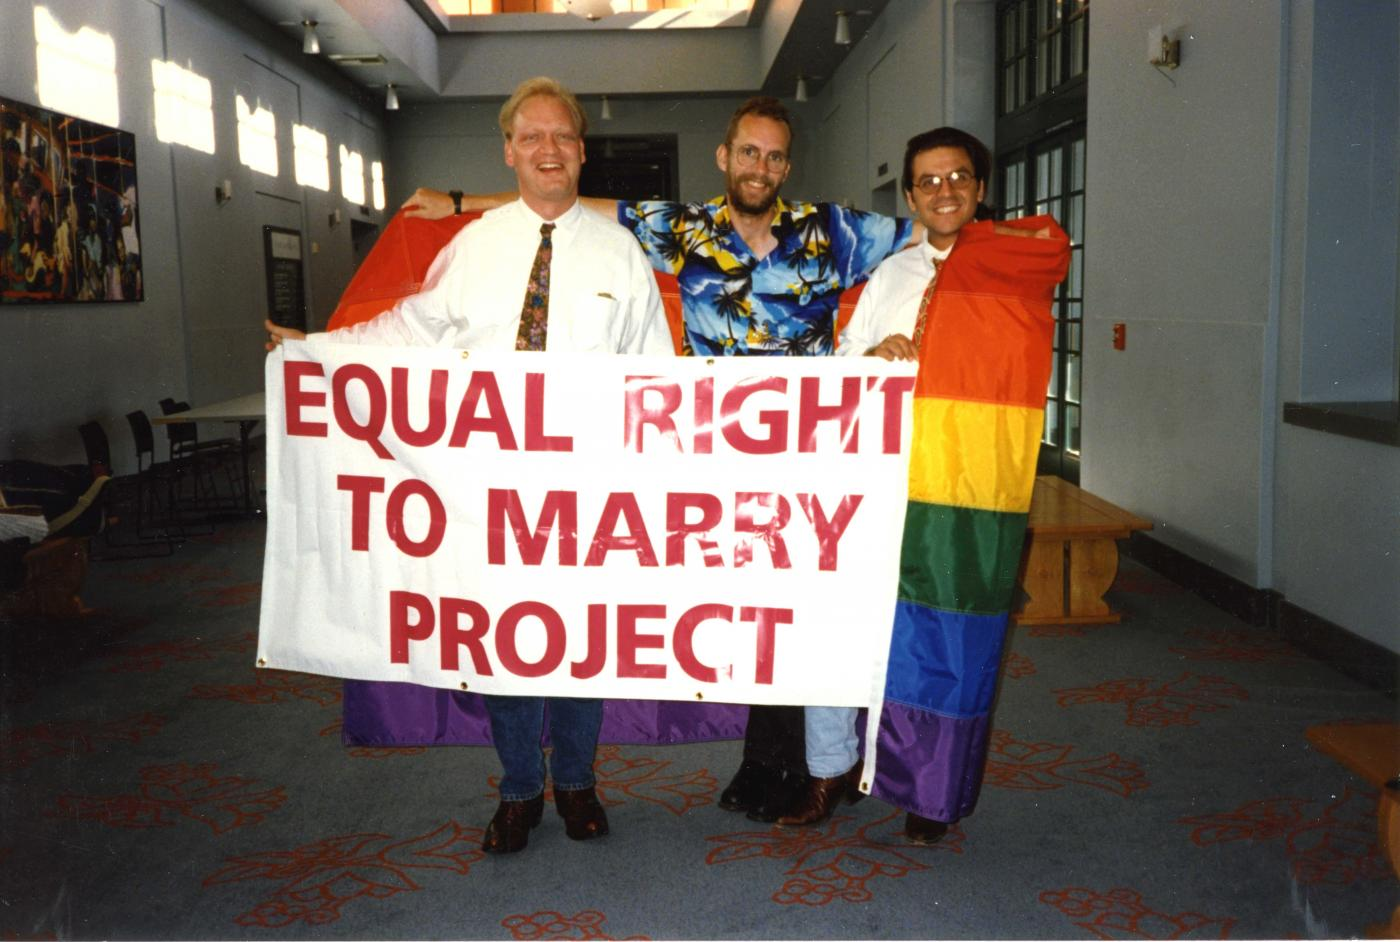 Equal Right to Marry project at the Clark County Library Aug. 2 1996